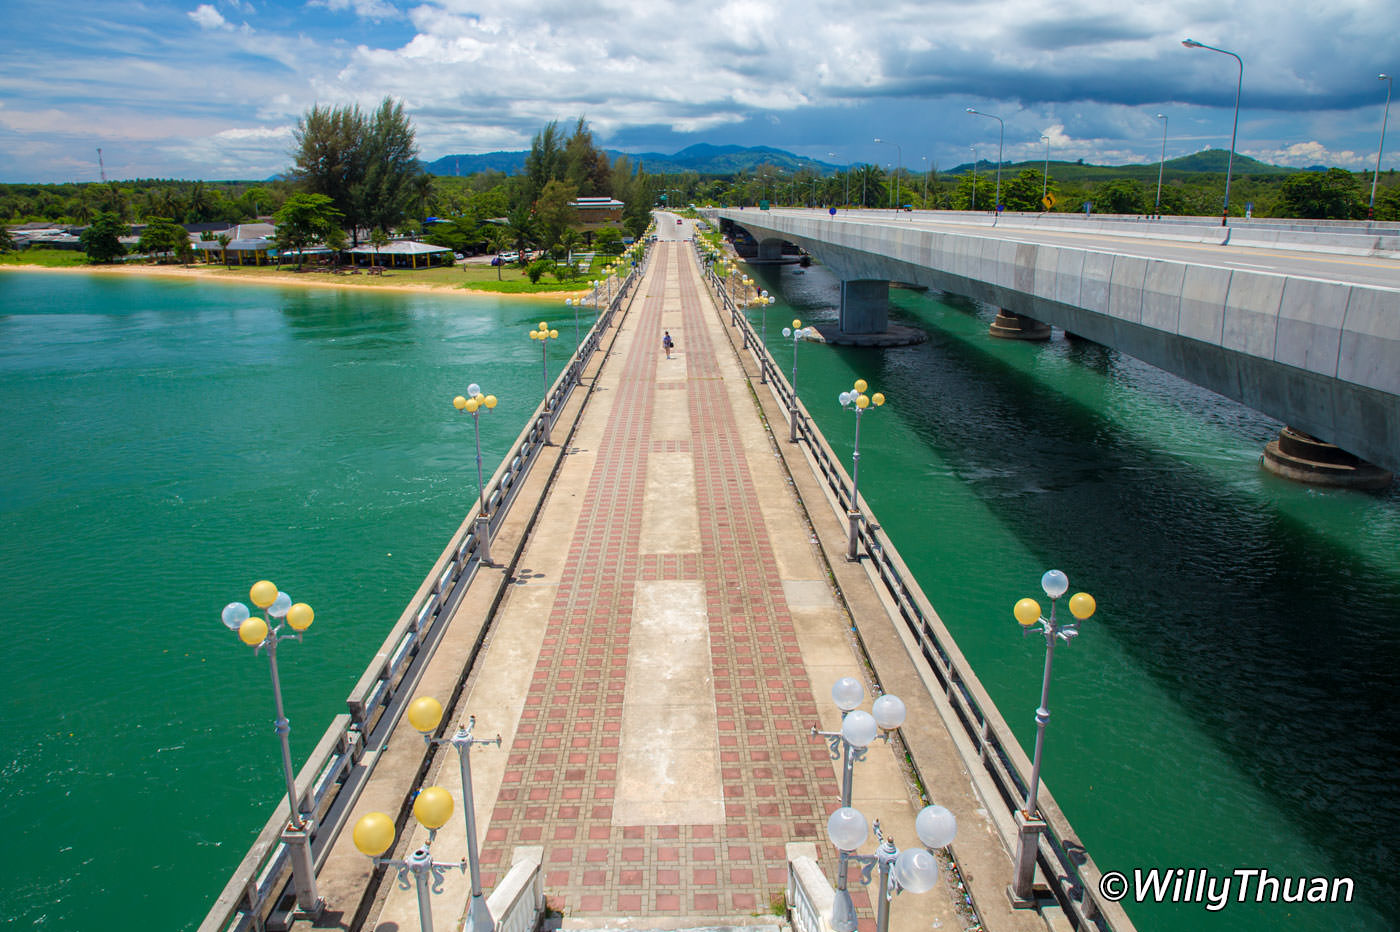 The old Sarasin Bridge runs parallel to the new bridge